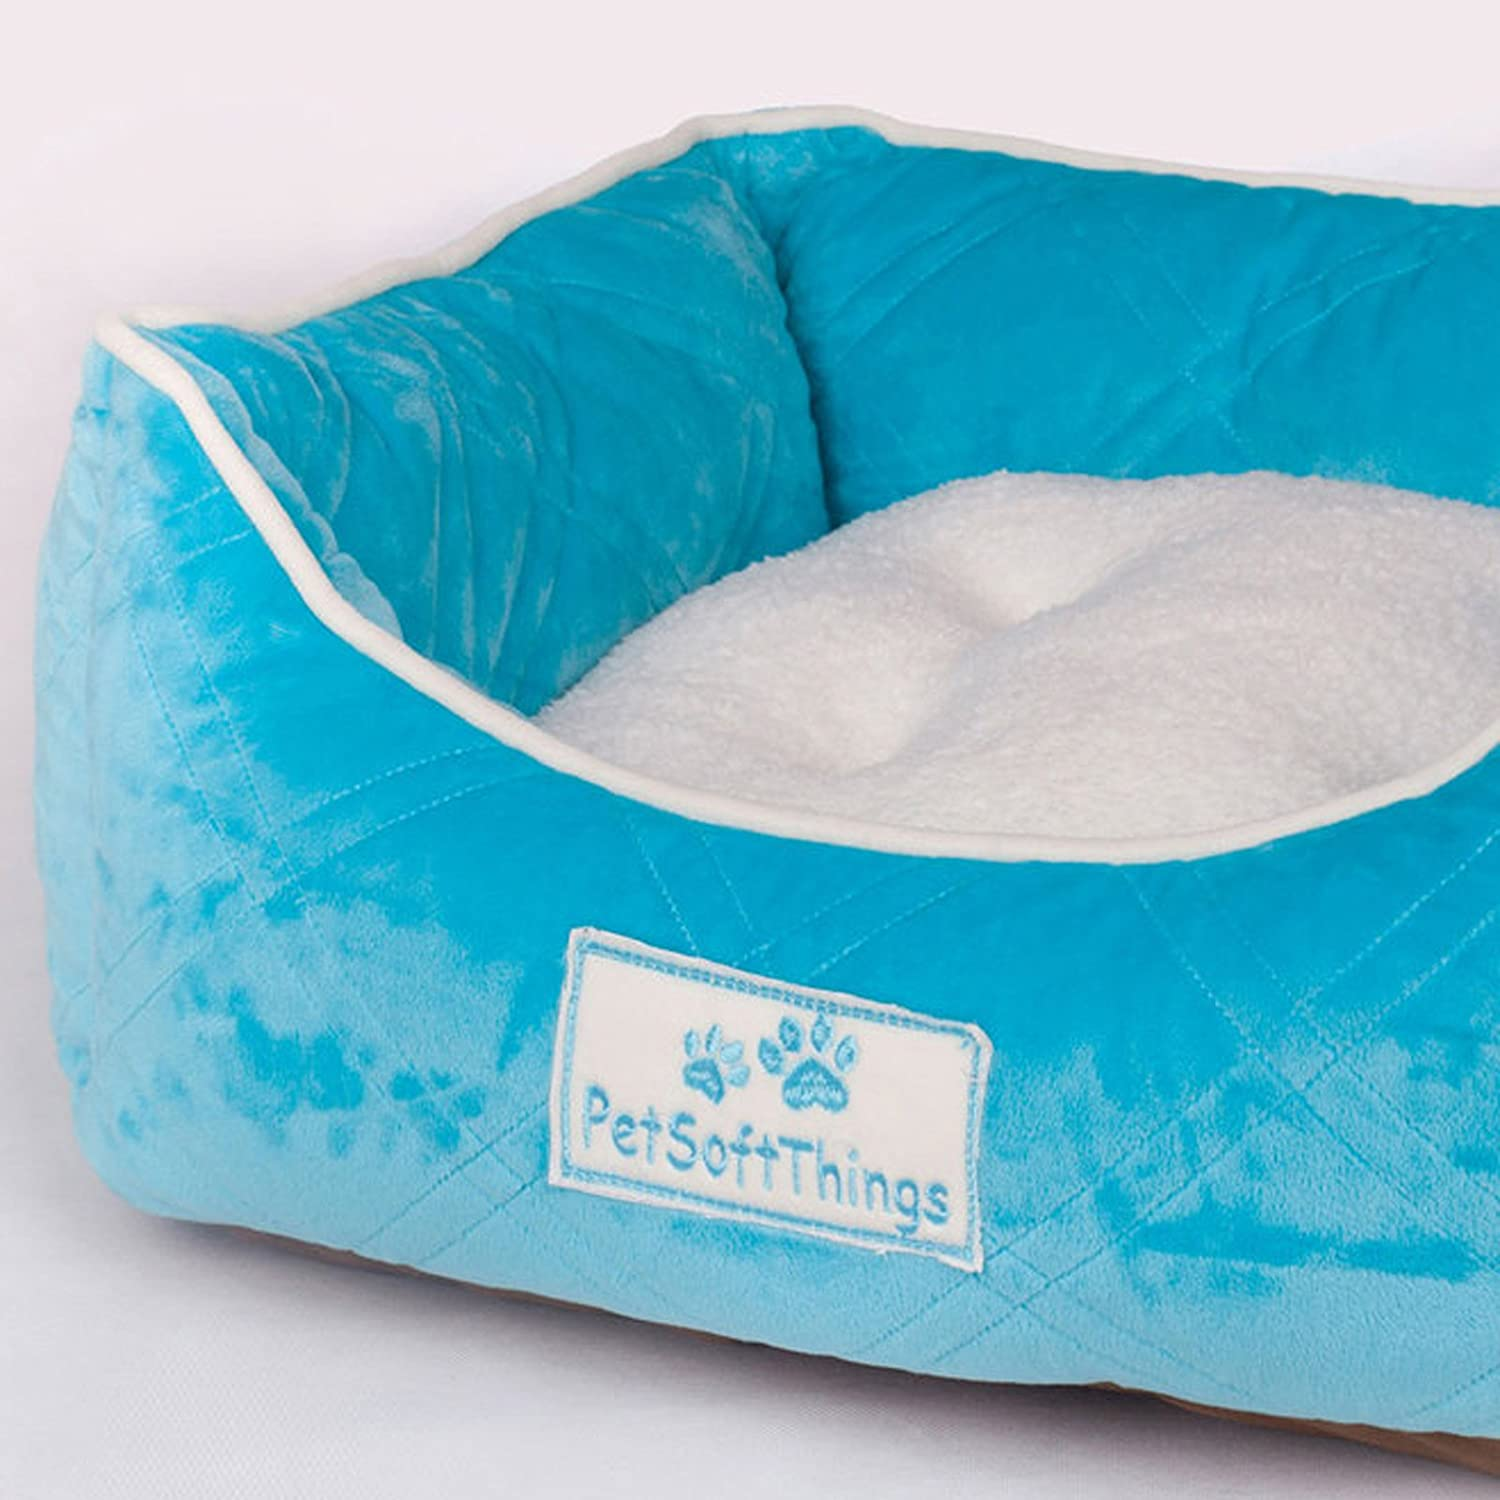 Scube bluee Pet Soft Things Super Soft Microplush Quilted Pet Bed with Removable Pillow, 19  x 24  x 8 , Scuba bluee